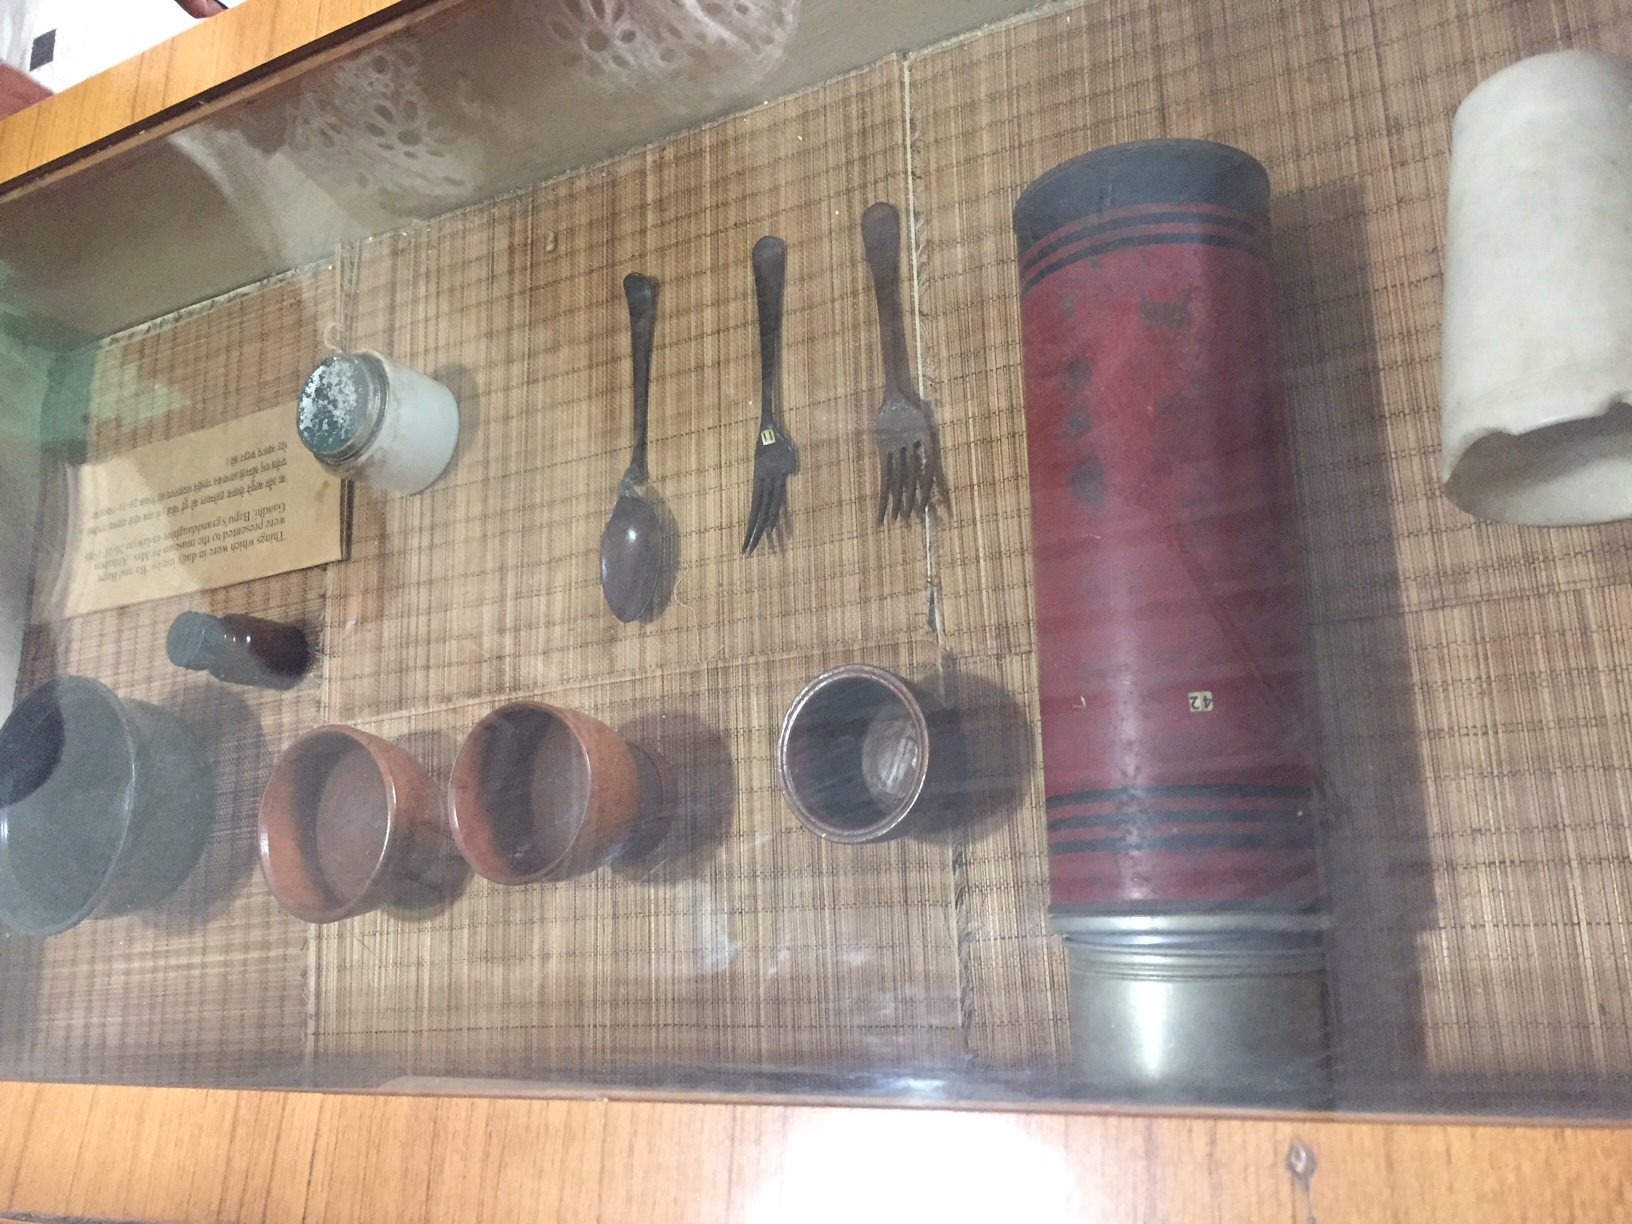 Item used by Mahatma Gandhi